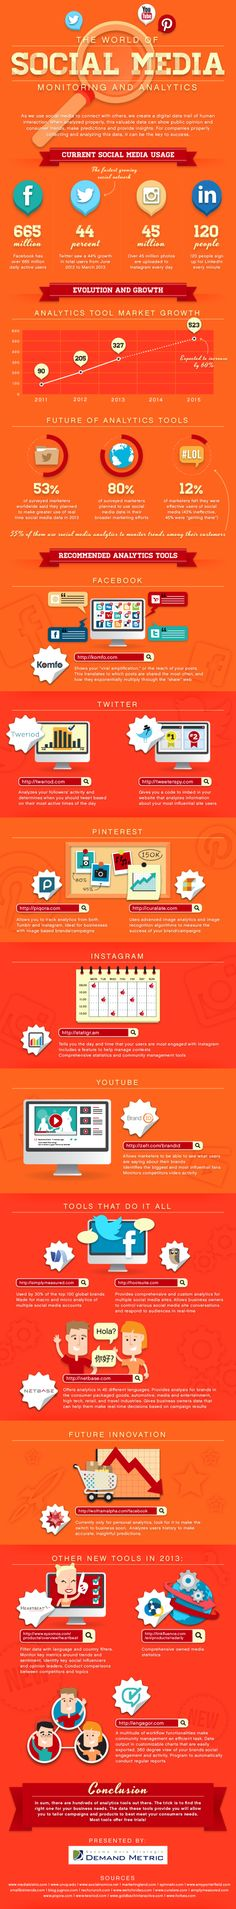 The world of #SocialMedia monitoring and analytics #infographic #SMM